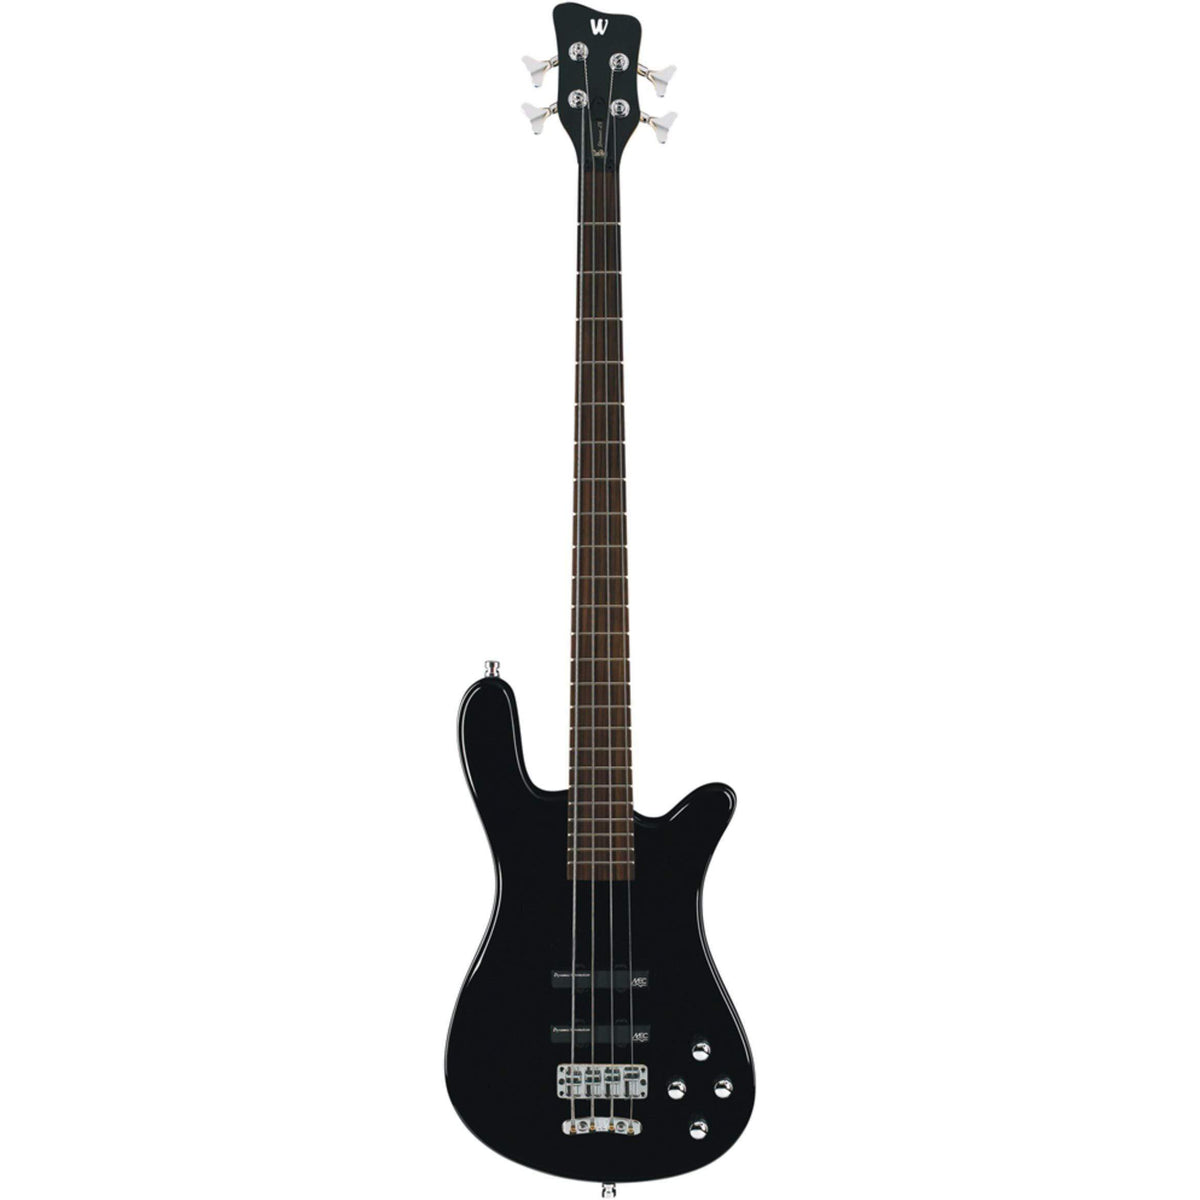 Warwick Basses Bass 4-String Warwick Rockbass Streamer LX-22305 4-string Electric Bass - Black